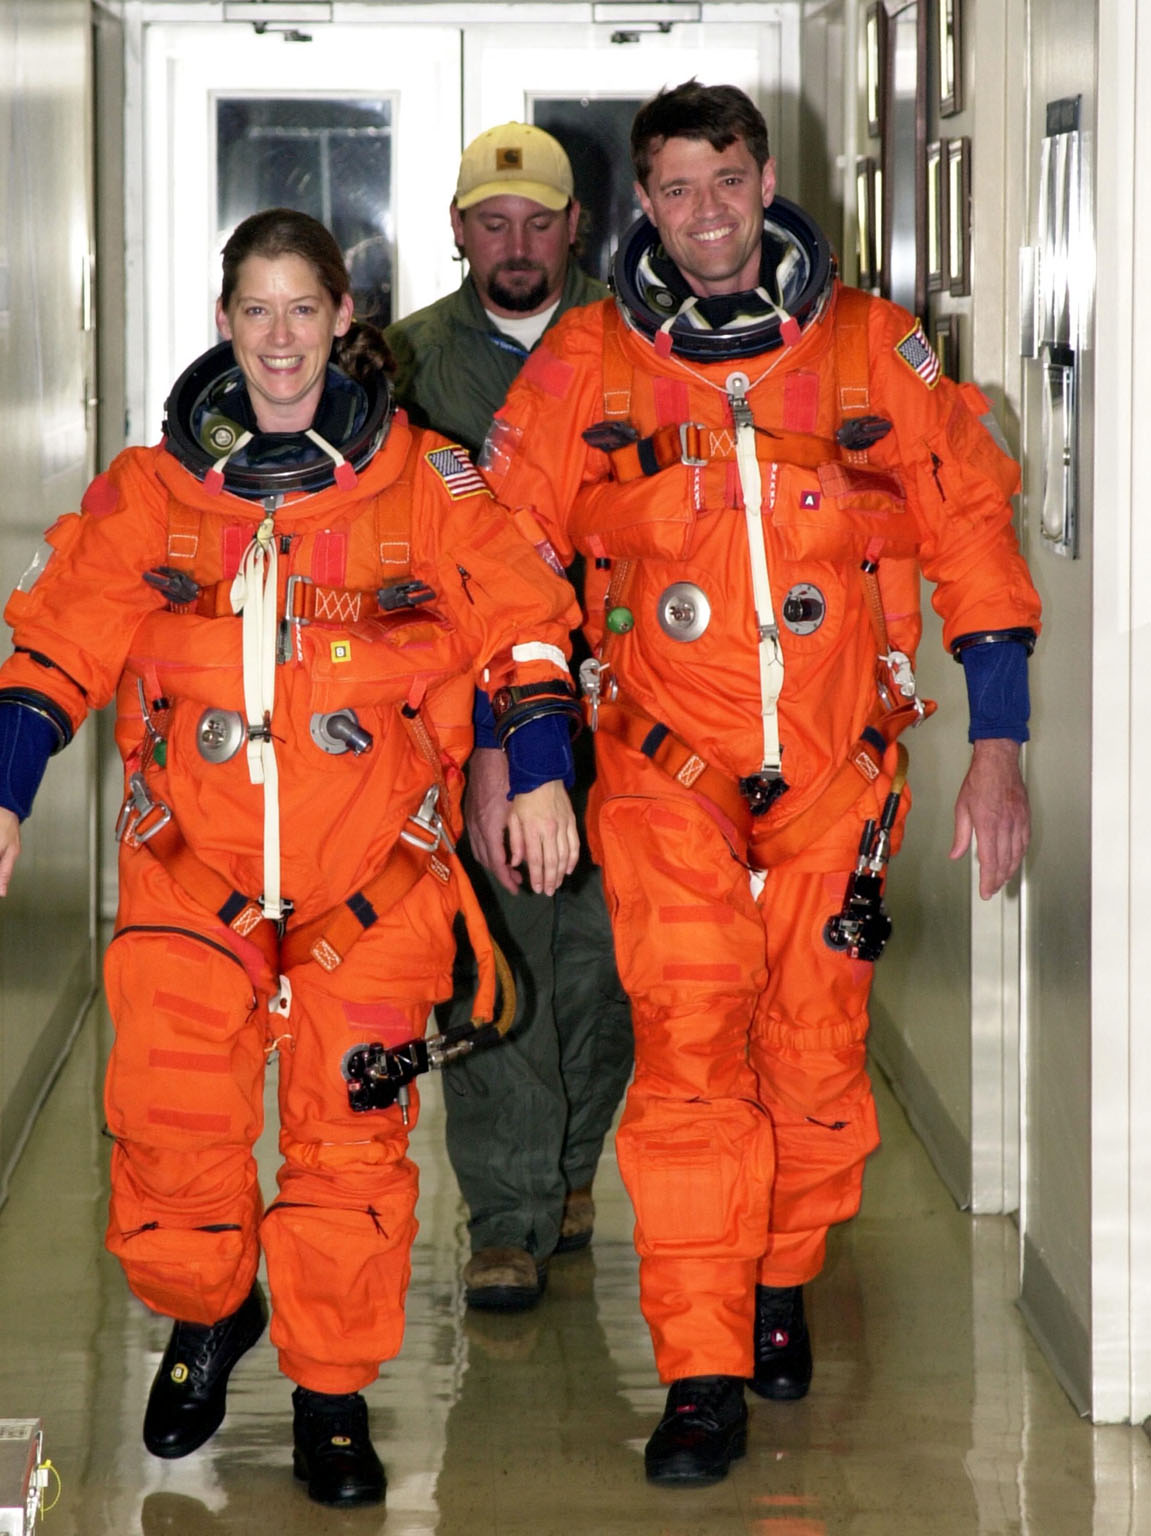 KENNEDY SPACE CENTER, FLA. --STS-112 Pilot Pamela Melroy (left) and Commander Jeffrey Ashby are suited up and ready to participate in landing exercises in the Shuttle Training Aircraft at the Shuttle Landing Facility.